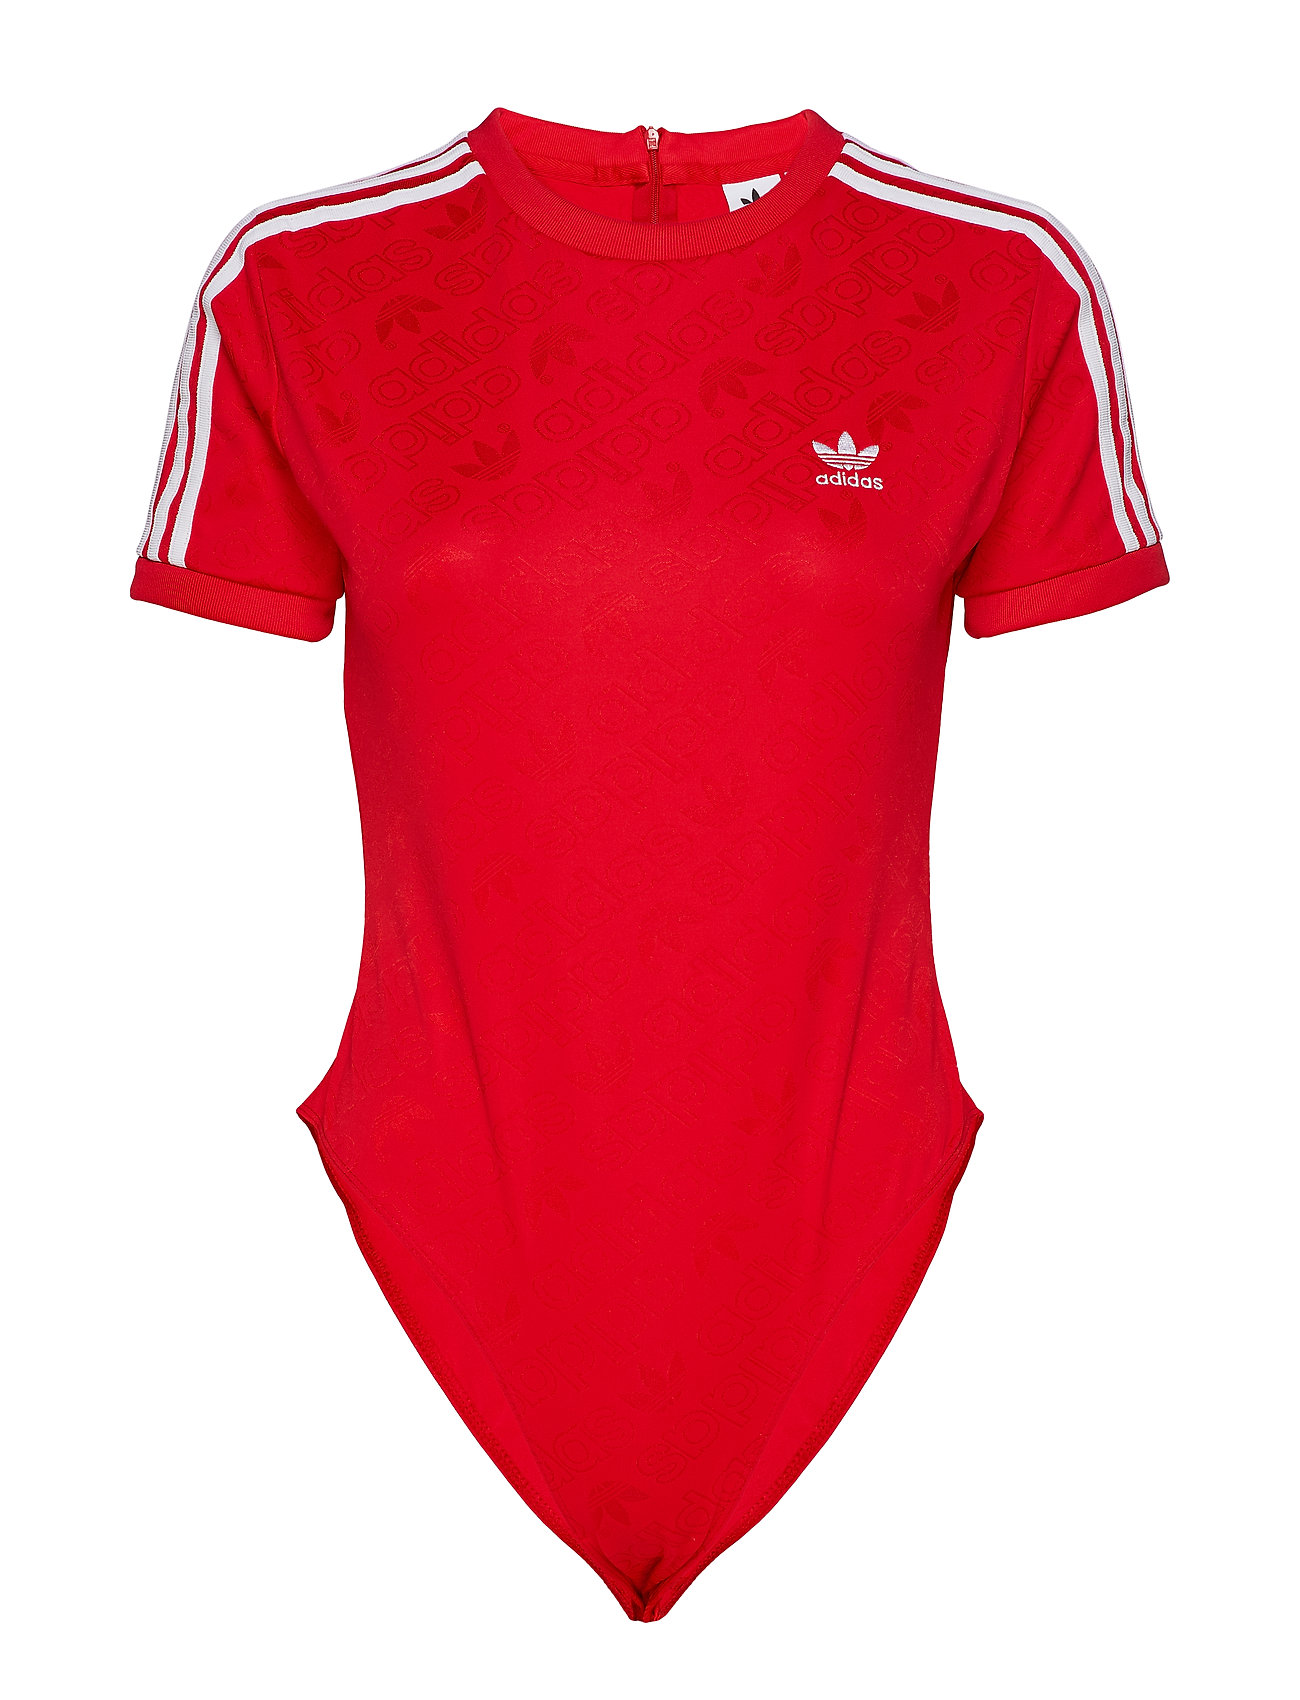 adidas Originals SS BODY - SCARLE